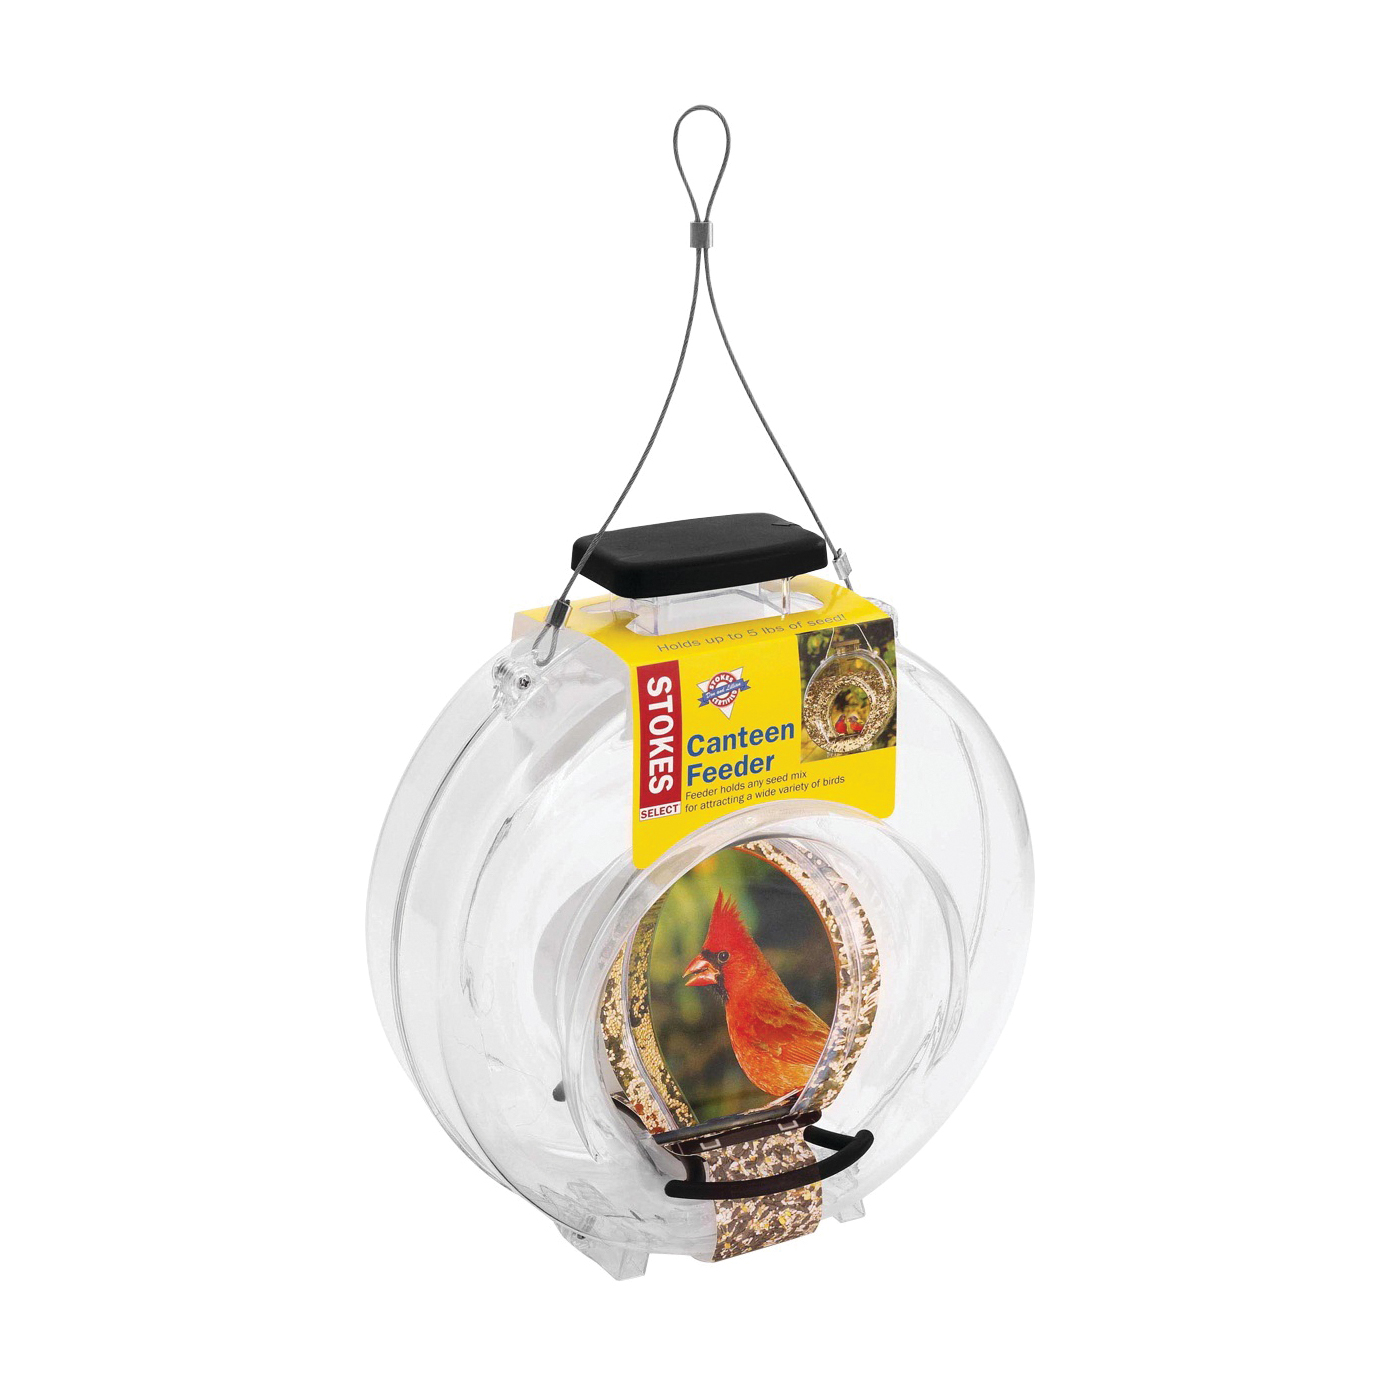 Picture of Stokes Select 38236 Canteen Hopper Feeder, Plastic/Polystyrene, 12-13/64 in H, Hanging Mounting